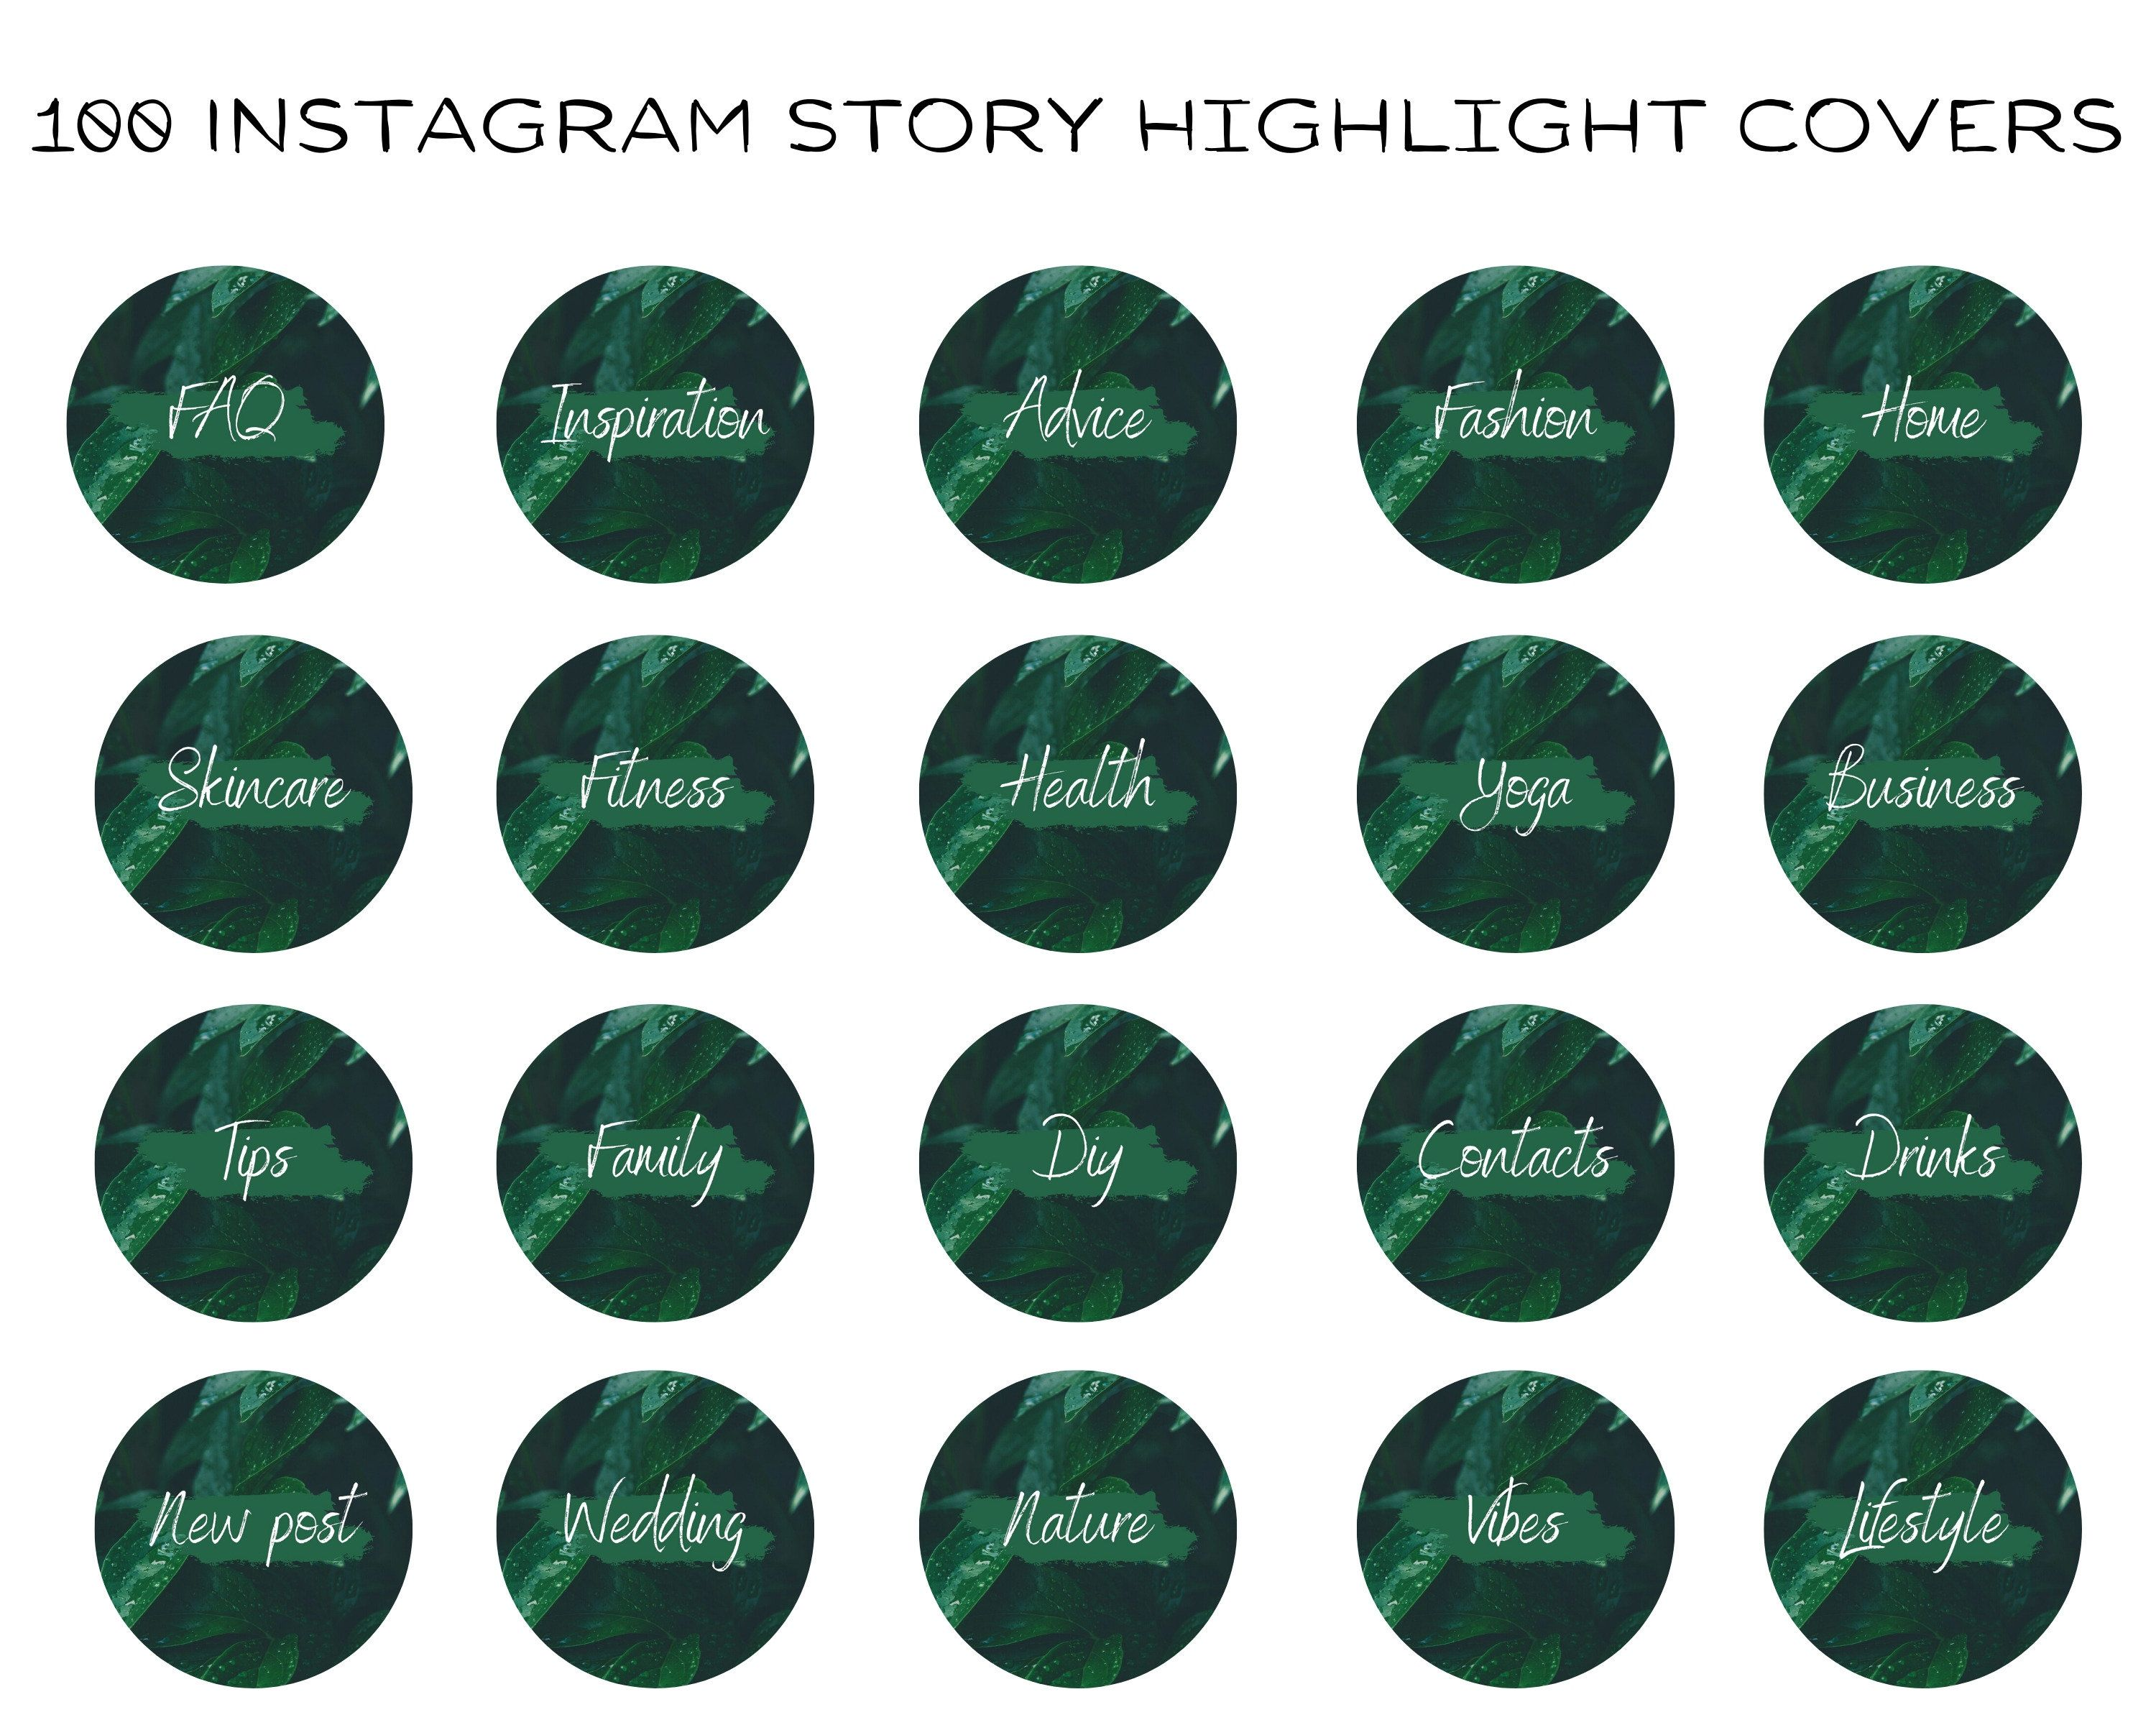 100 Instagram Story Highlight Icons Green Text Highlights Minimalist Instagram Greenery Covers Instagram Text Covers Social Media Icons In 2020 Story Highlights Instagram Story Instagram Icons